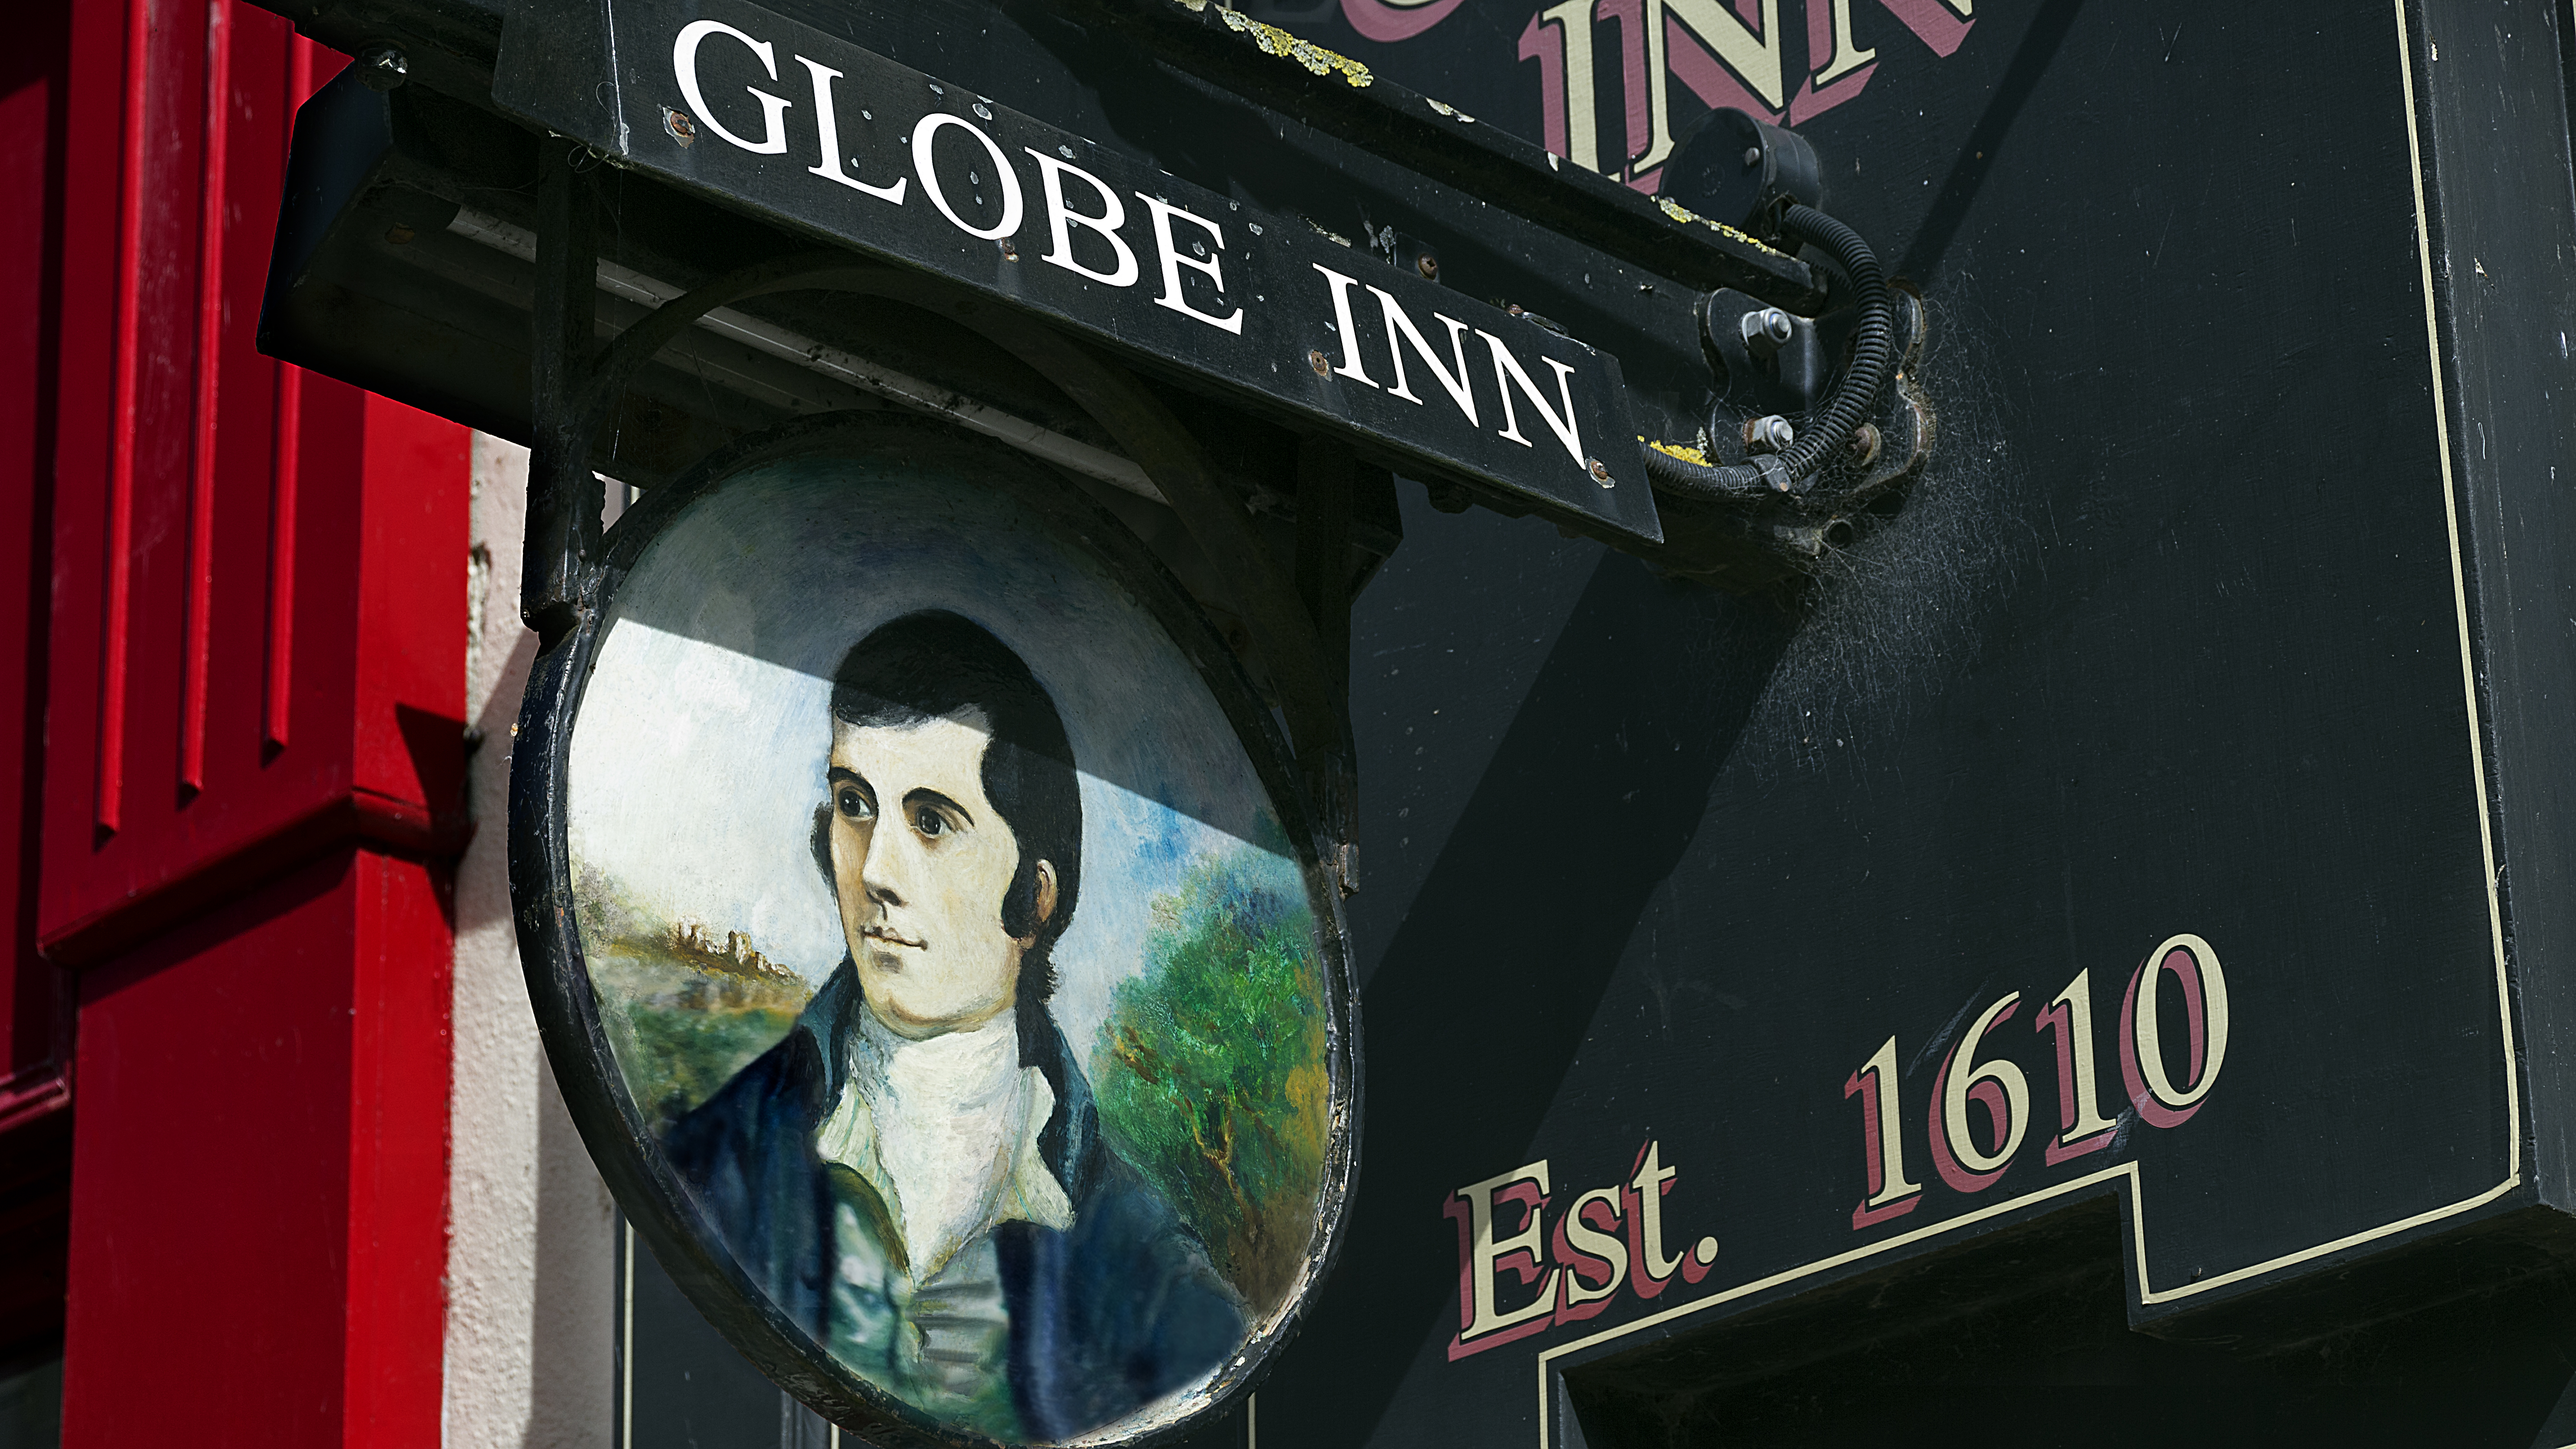 Robert Burns Globe Inn - Wha's Like Us